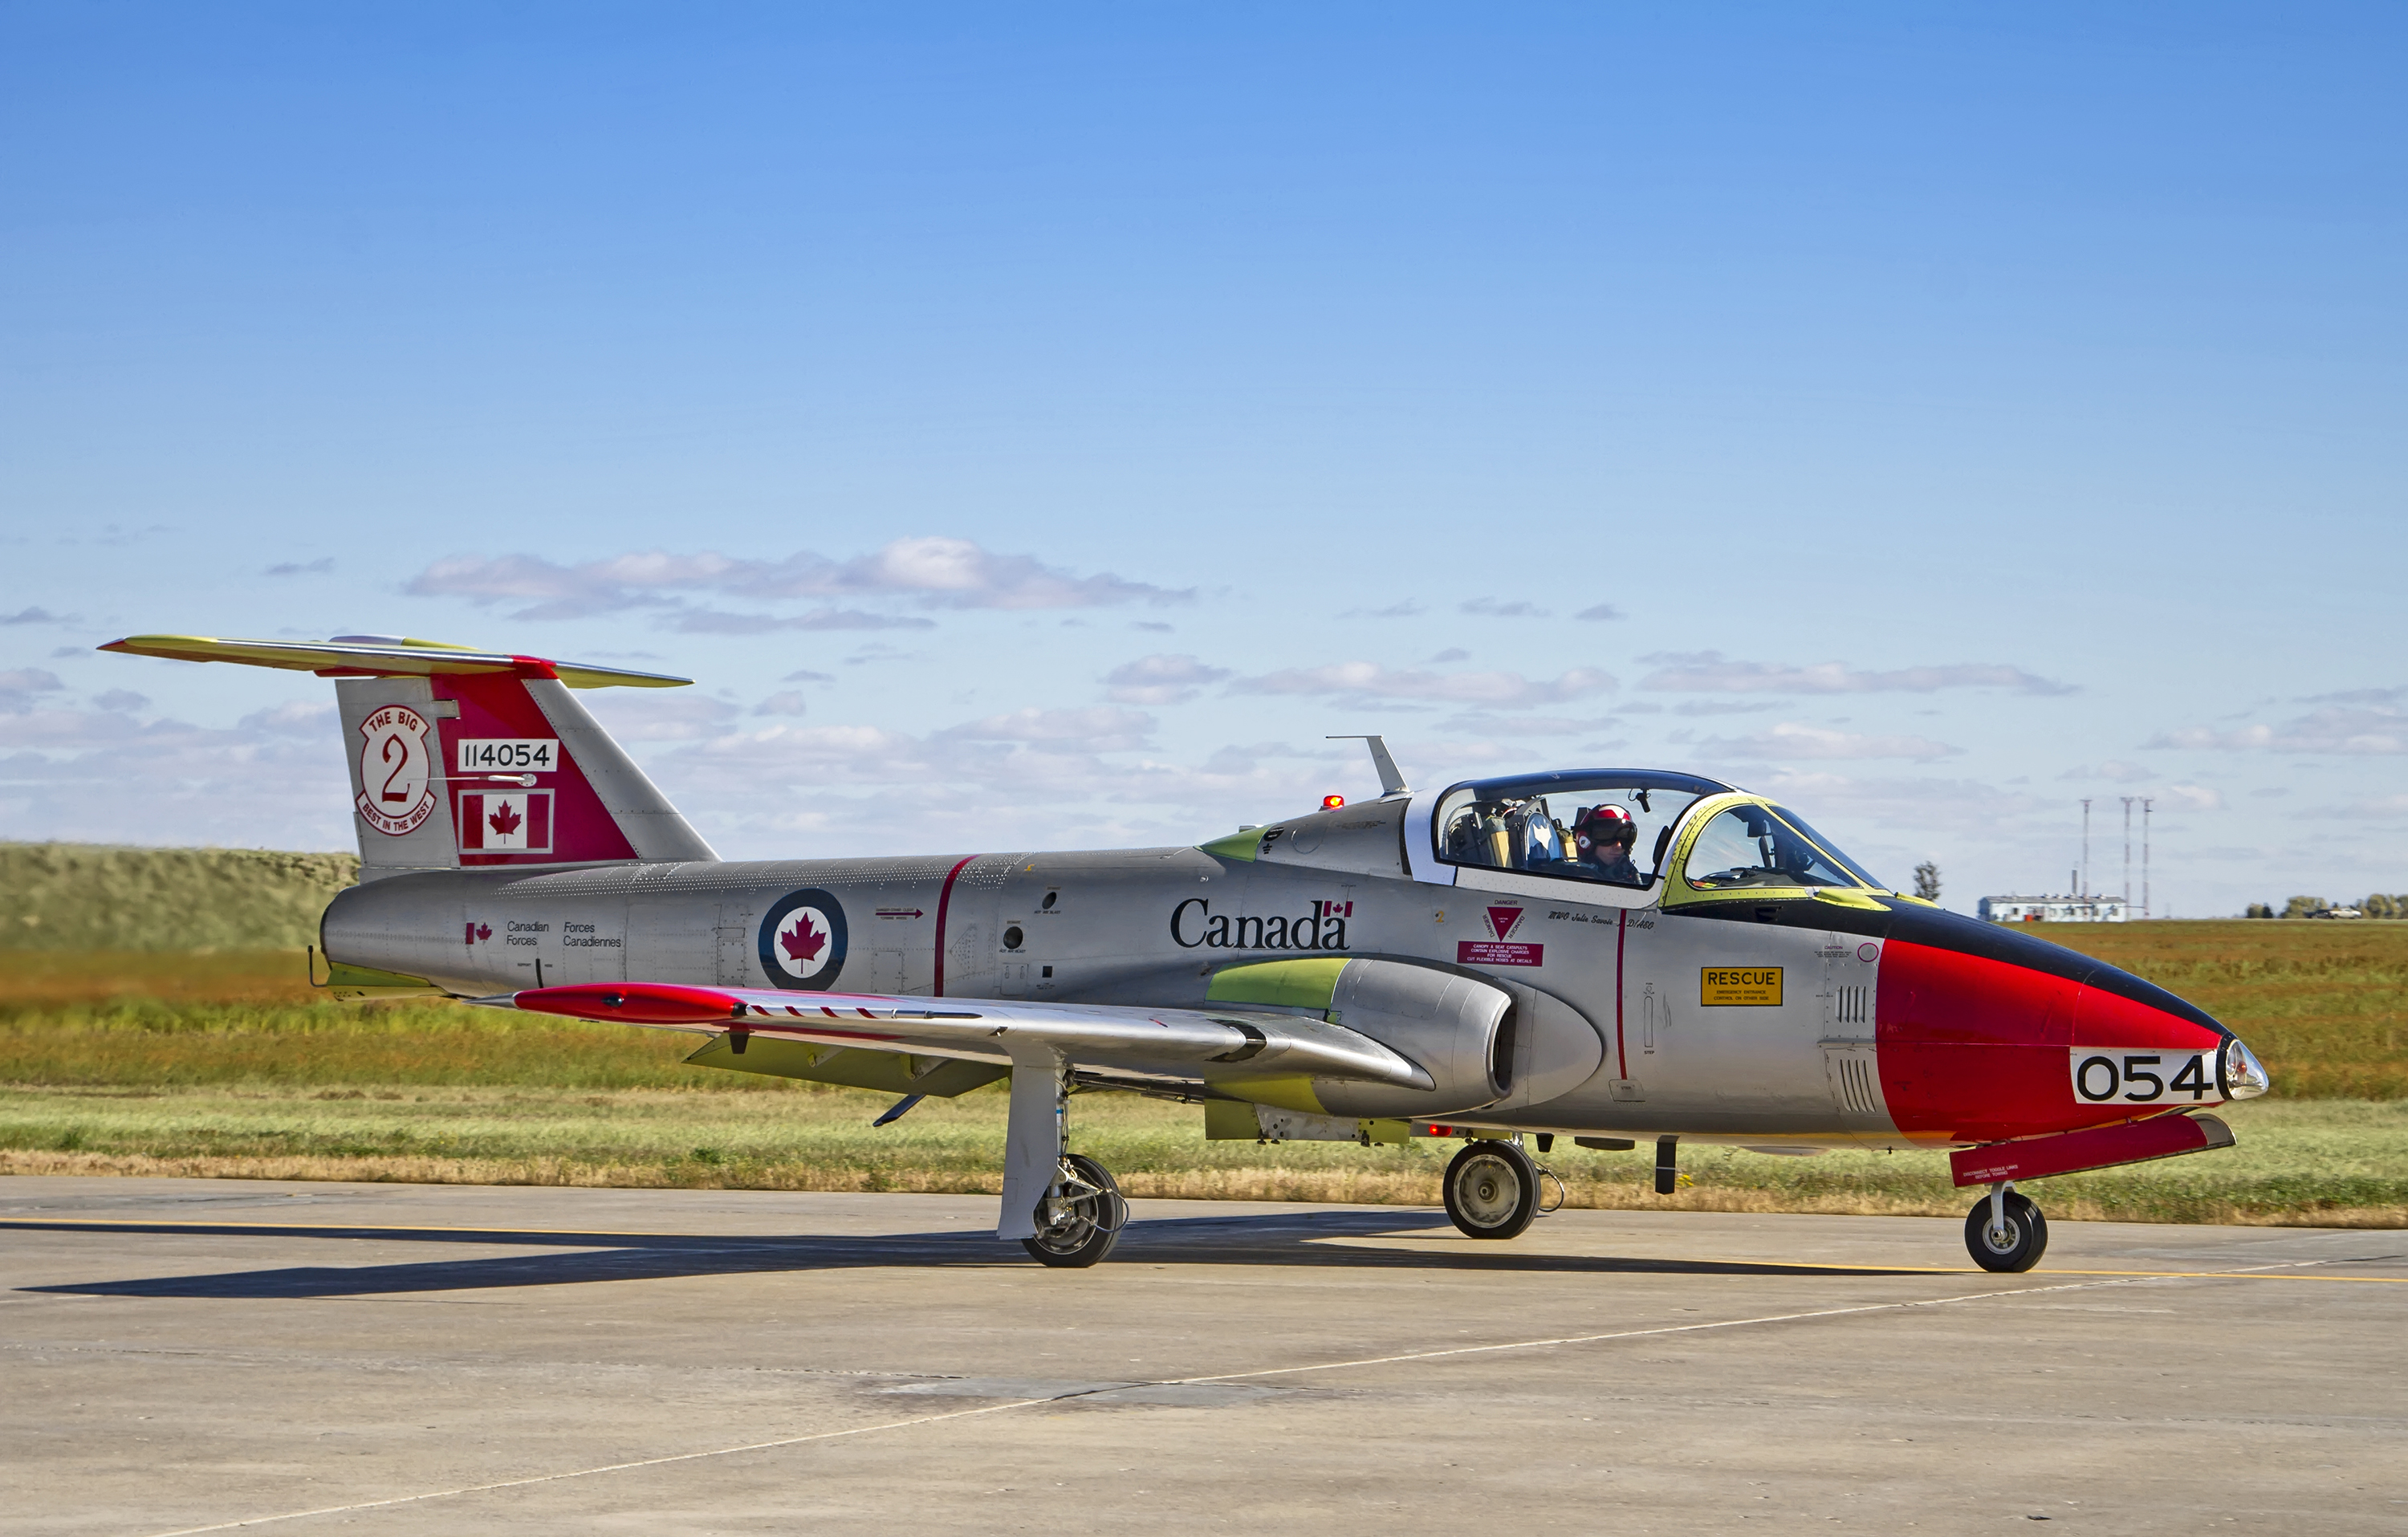 During the Tutor 50th Anniversary celebration at 15 Wing Moose Jaw, Saskatchewan, on October 3 – 4, 2014, a CT-114 Tutor jet fighter displays the colours and markings that Tutors wore in the mid-1960s as primary trainers at 2 Canadian Forces Flying Training School at 15 Wing. PHOTO: Mike Leudey